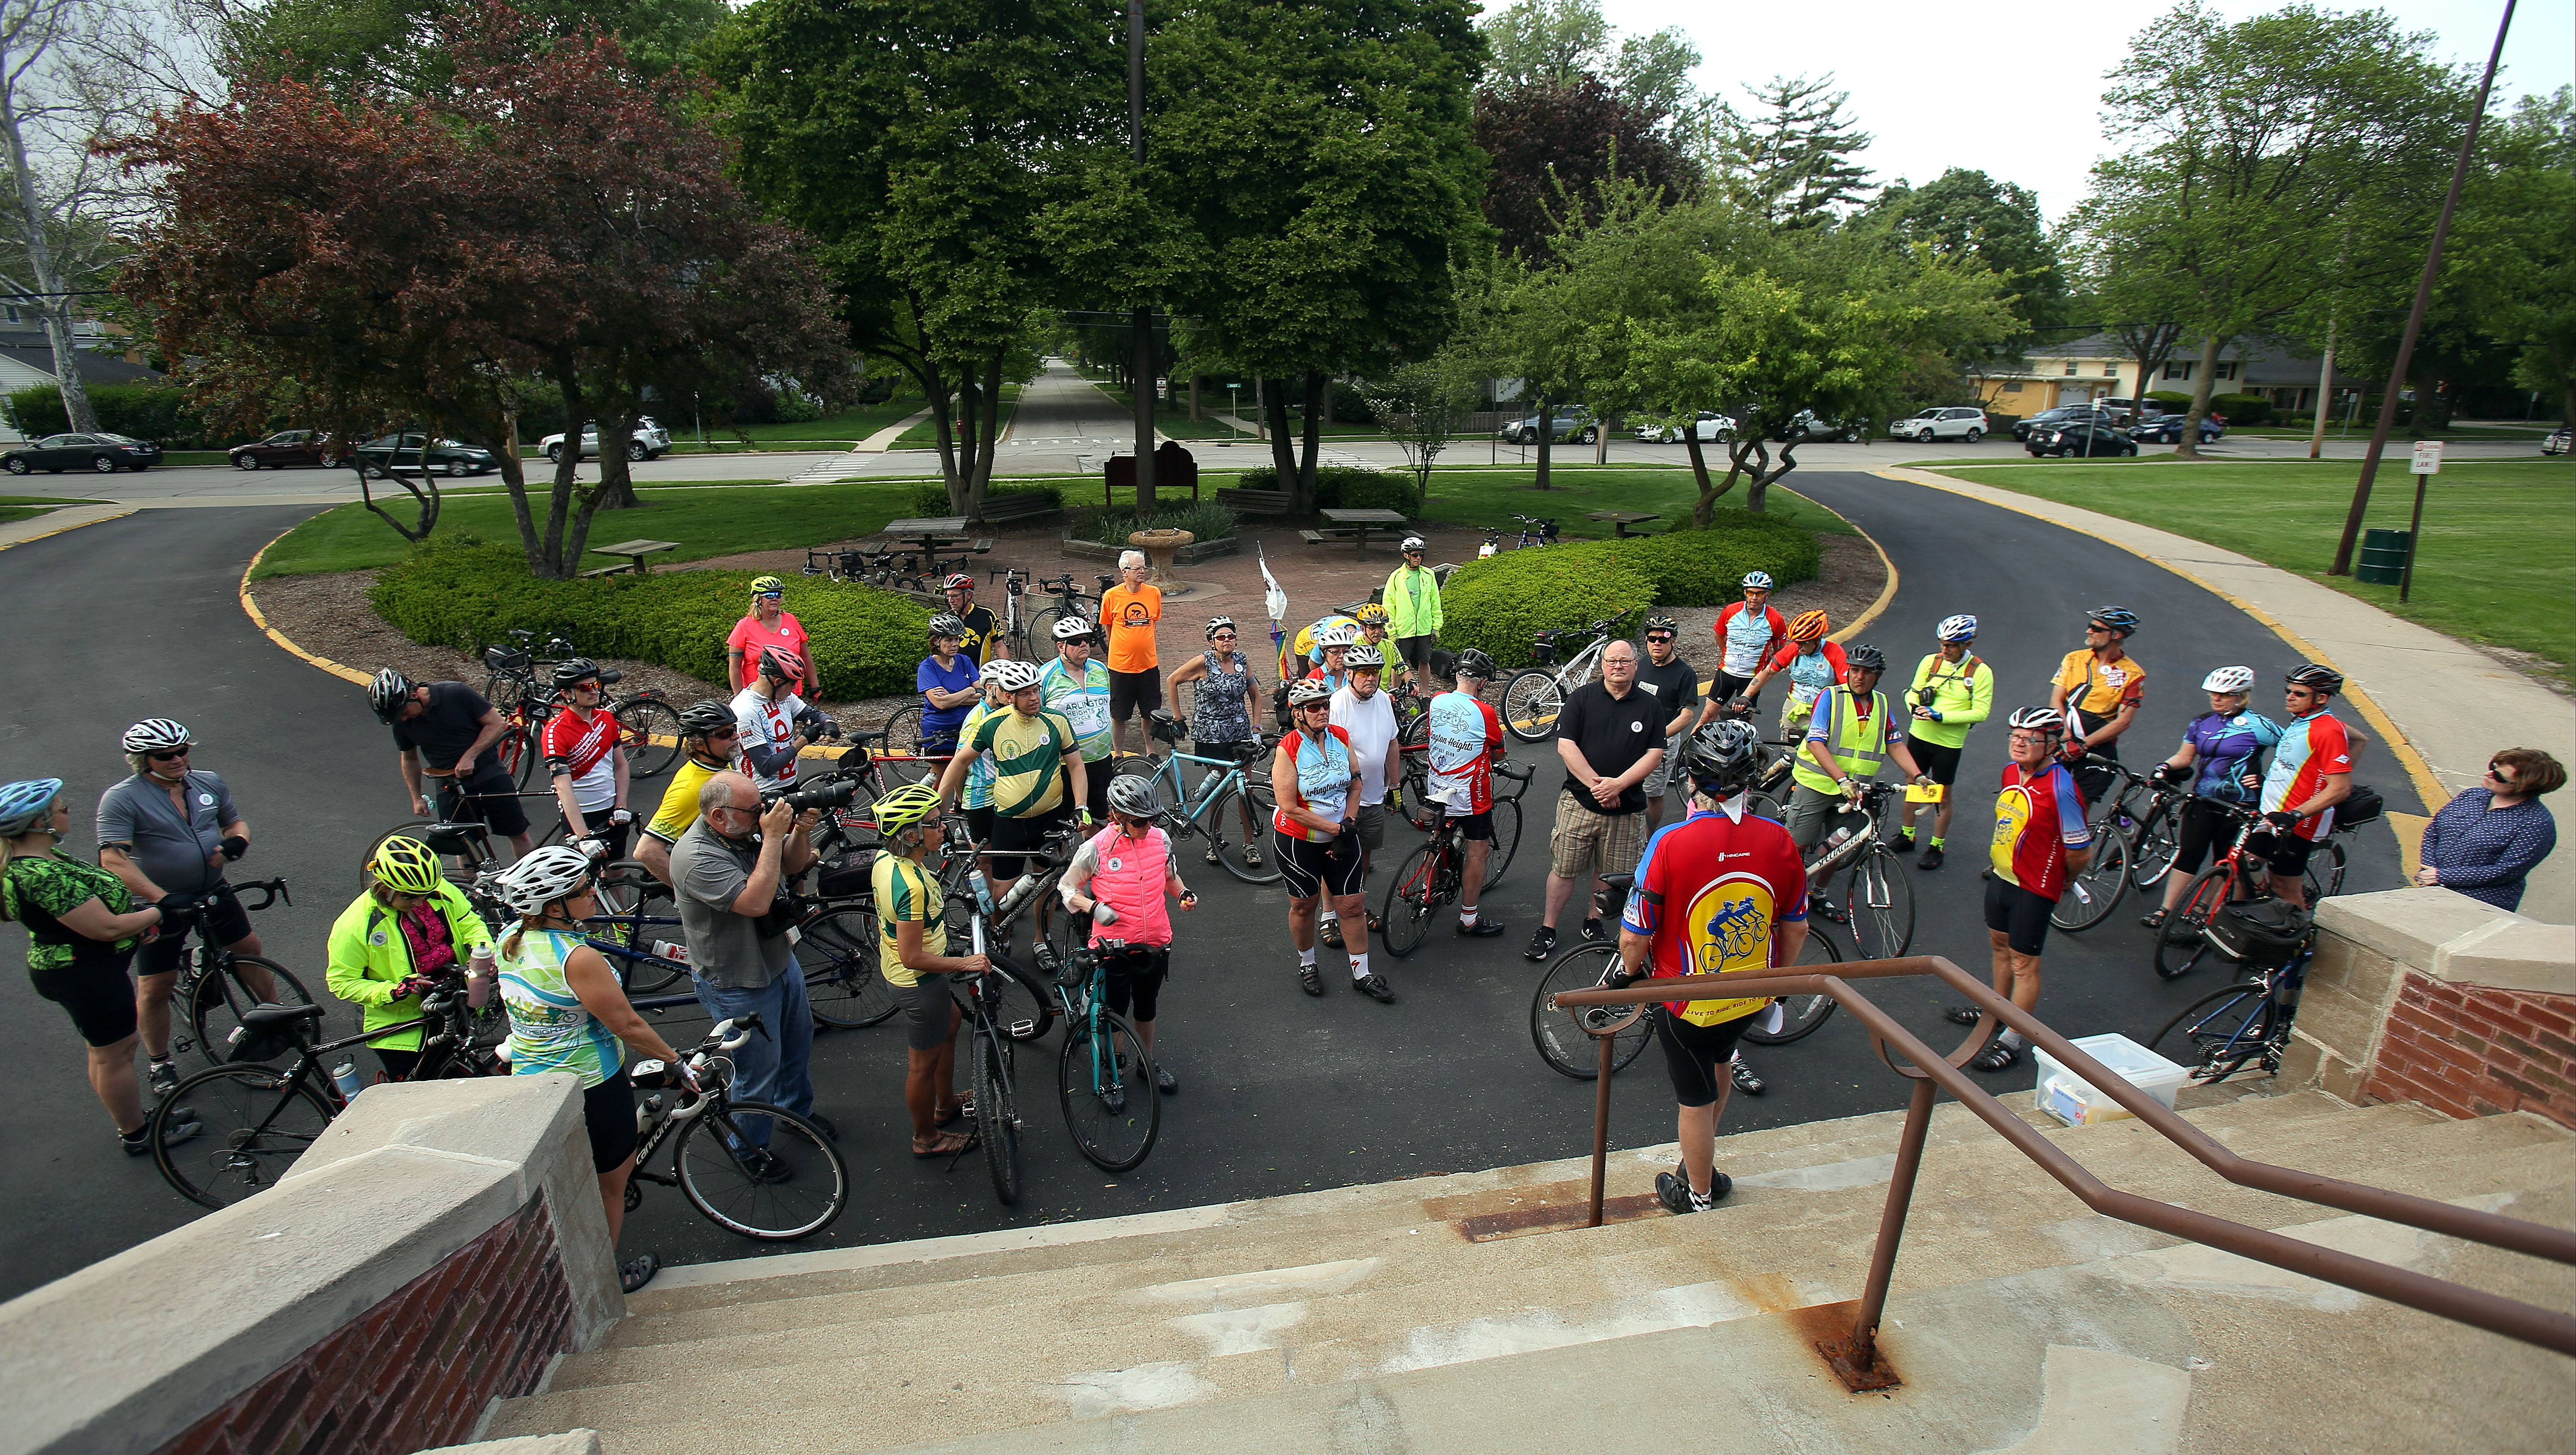 Members of the Arlington Heights Bicycle Club gathered at Recreation Park in Arlington Heights Wednesday to participate in the International Ride of Silence. They rode this year in honor of Mount Prospect cyclist Jodi Beaudry who died on June, 9, 2016, after being struck by an SUV.